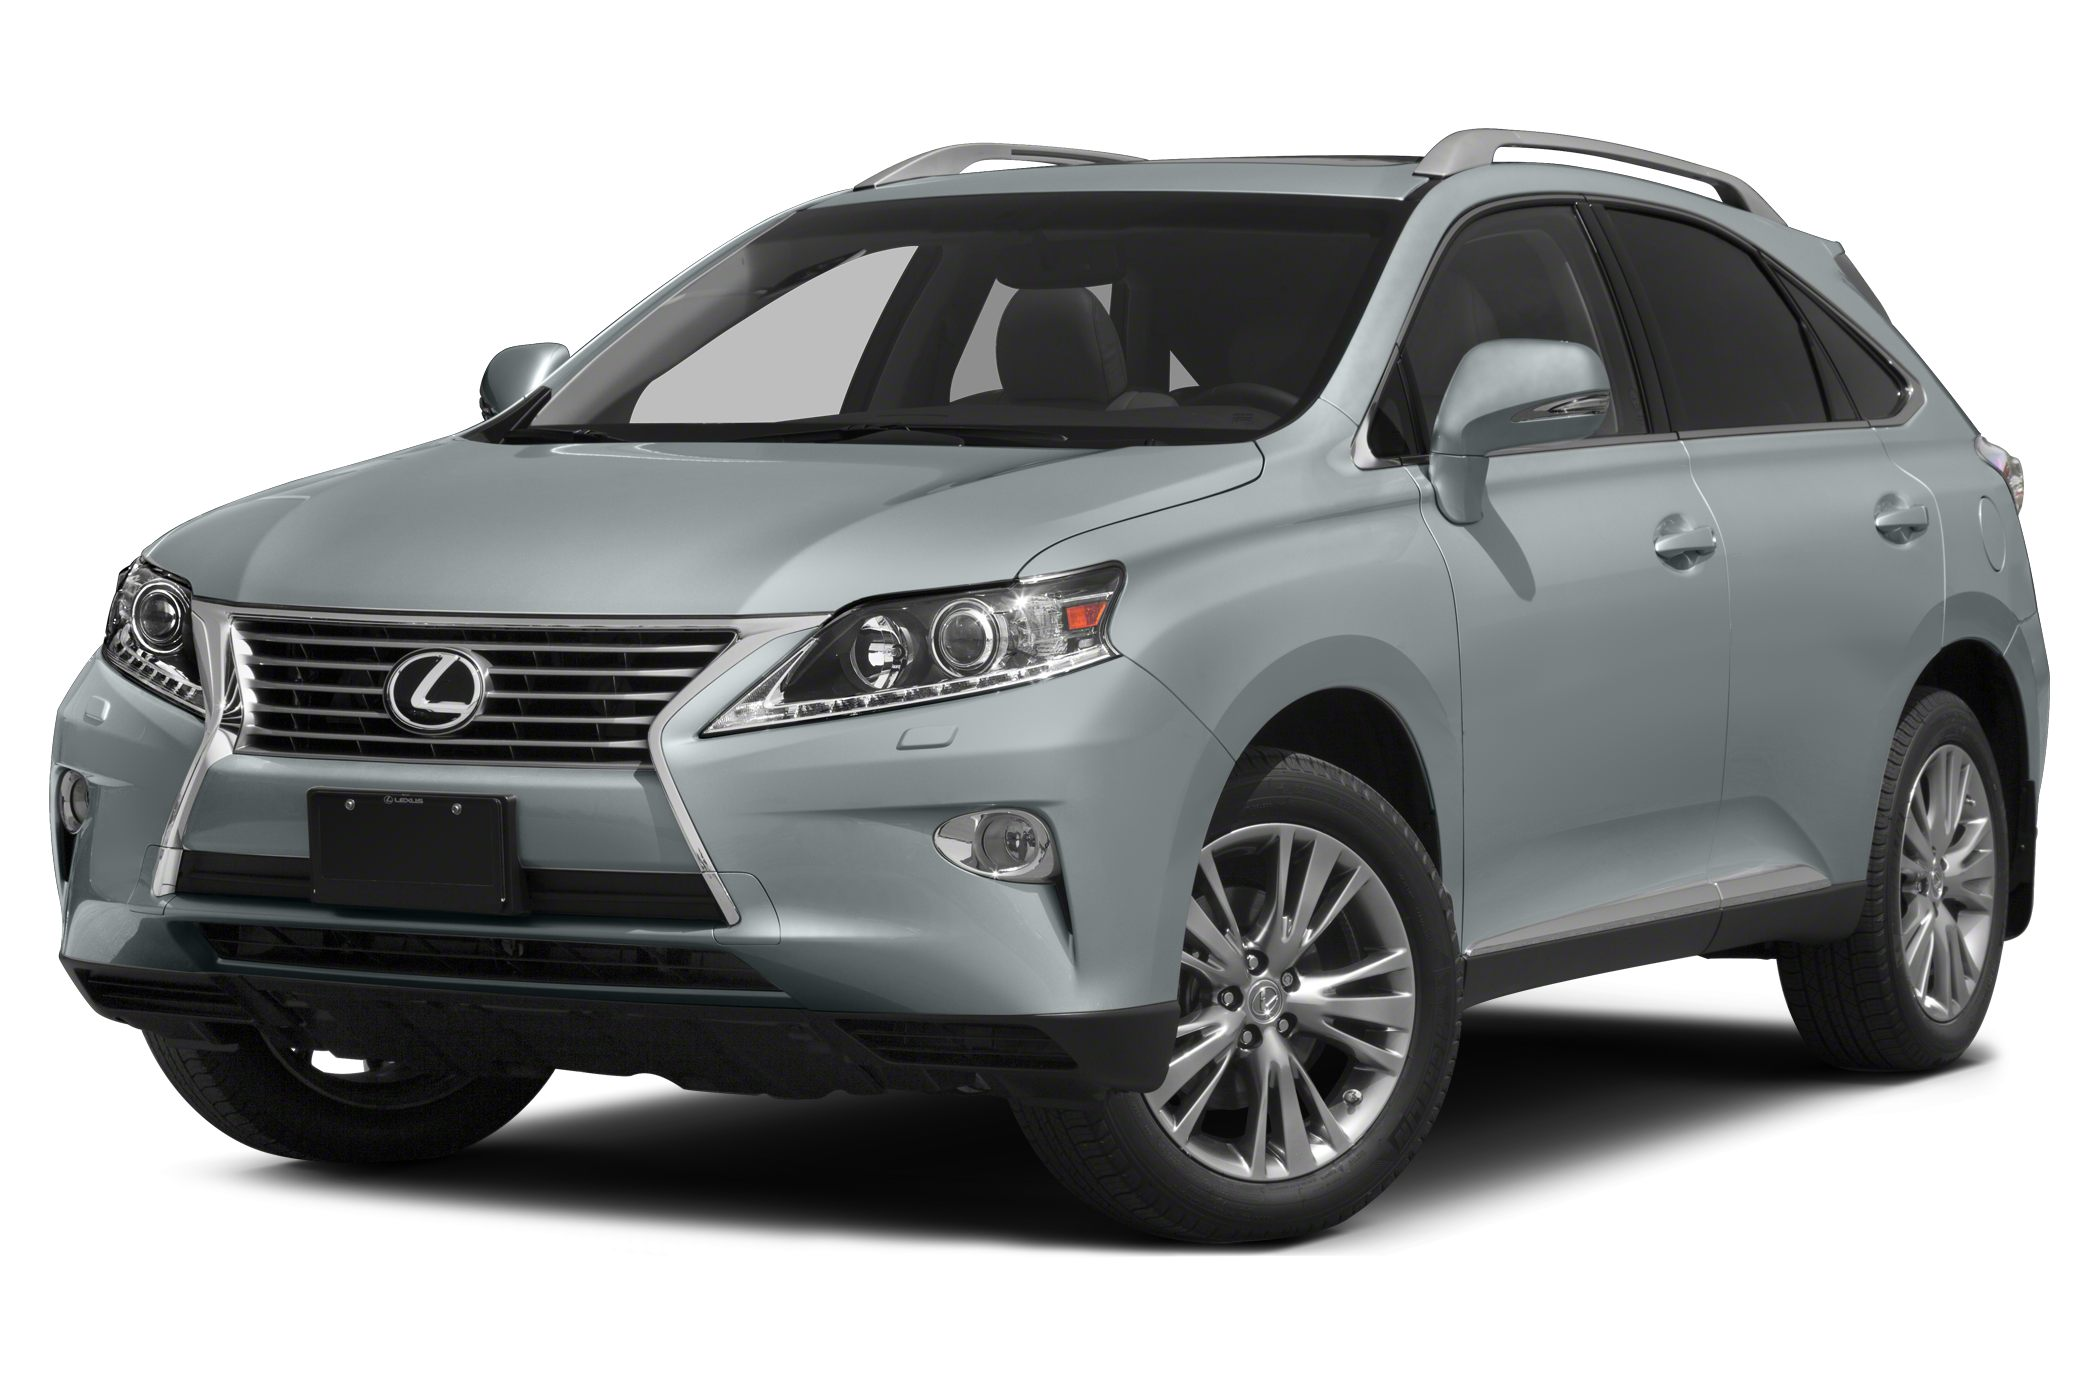 2014 Lexus RX 350 Base PREMIUM PKG1 OWNERCARFAX CERTIFIEDLOADEDPOWER SUNROOFMEMORY SEA